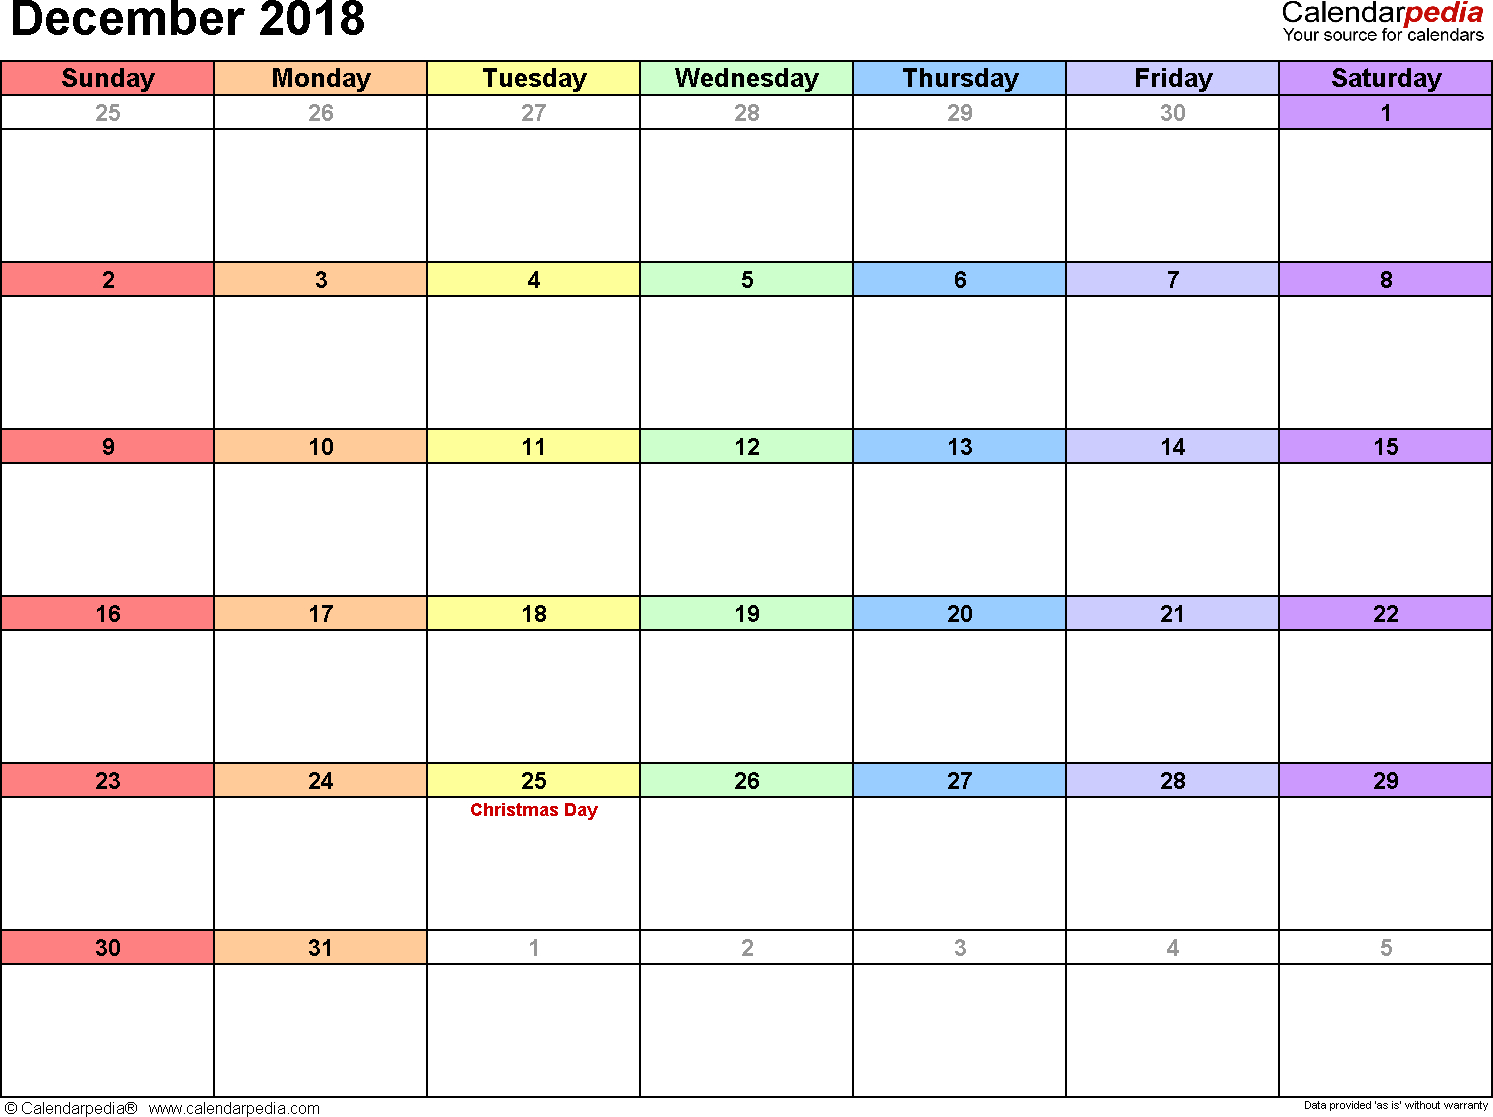 December 2018 Calendars For Word, Excel & Pdf within December Monthly Calendar Template